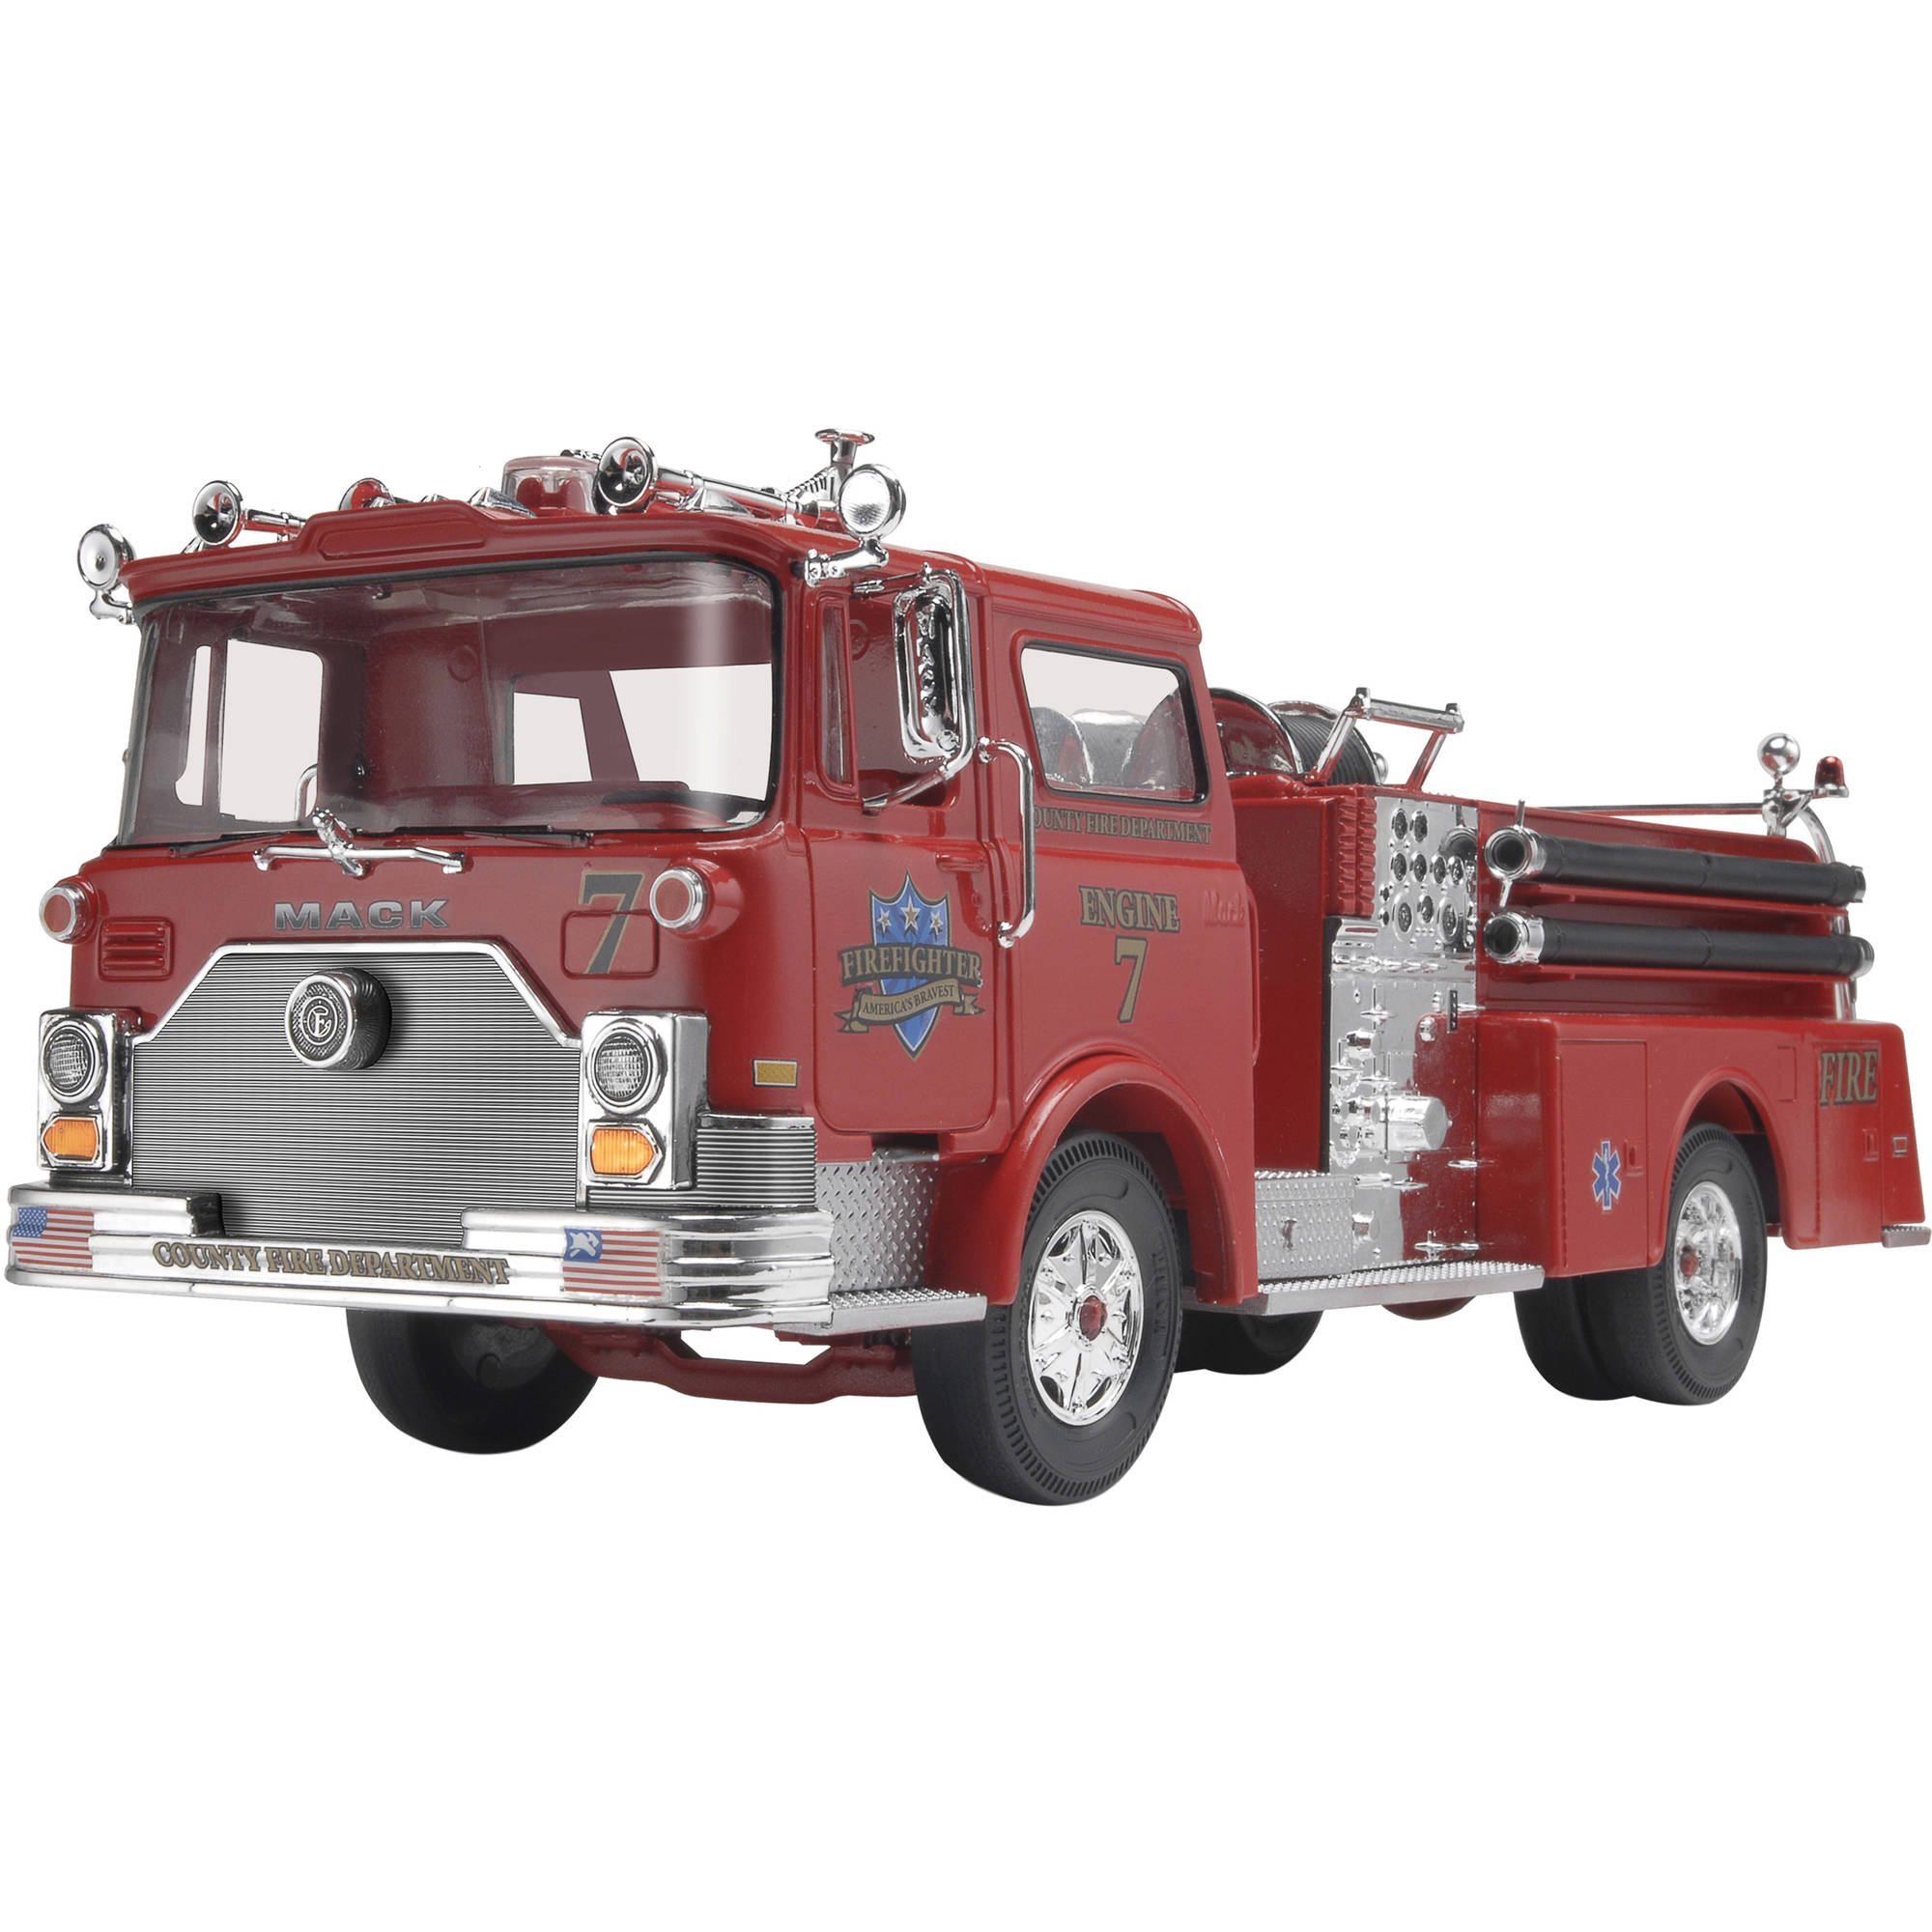 Revell SnapTite Max 1:32 Mack Fire Pumper Plastic Model Kit by Revell